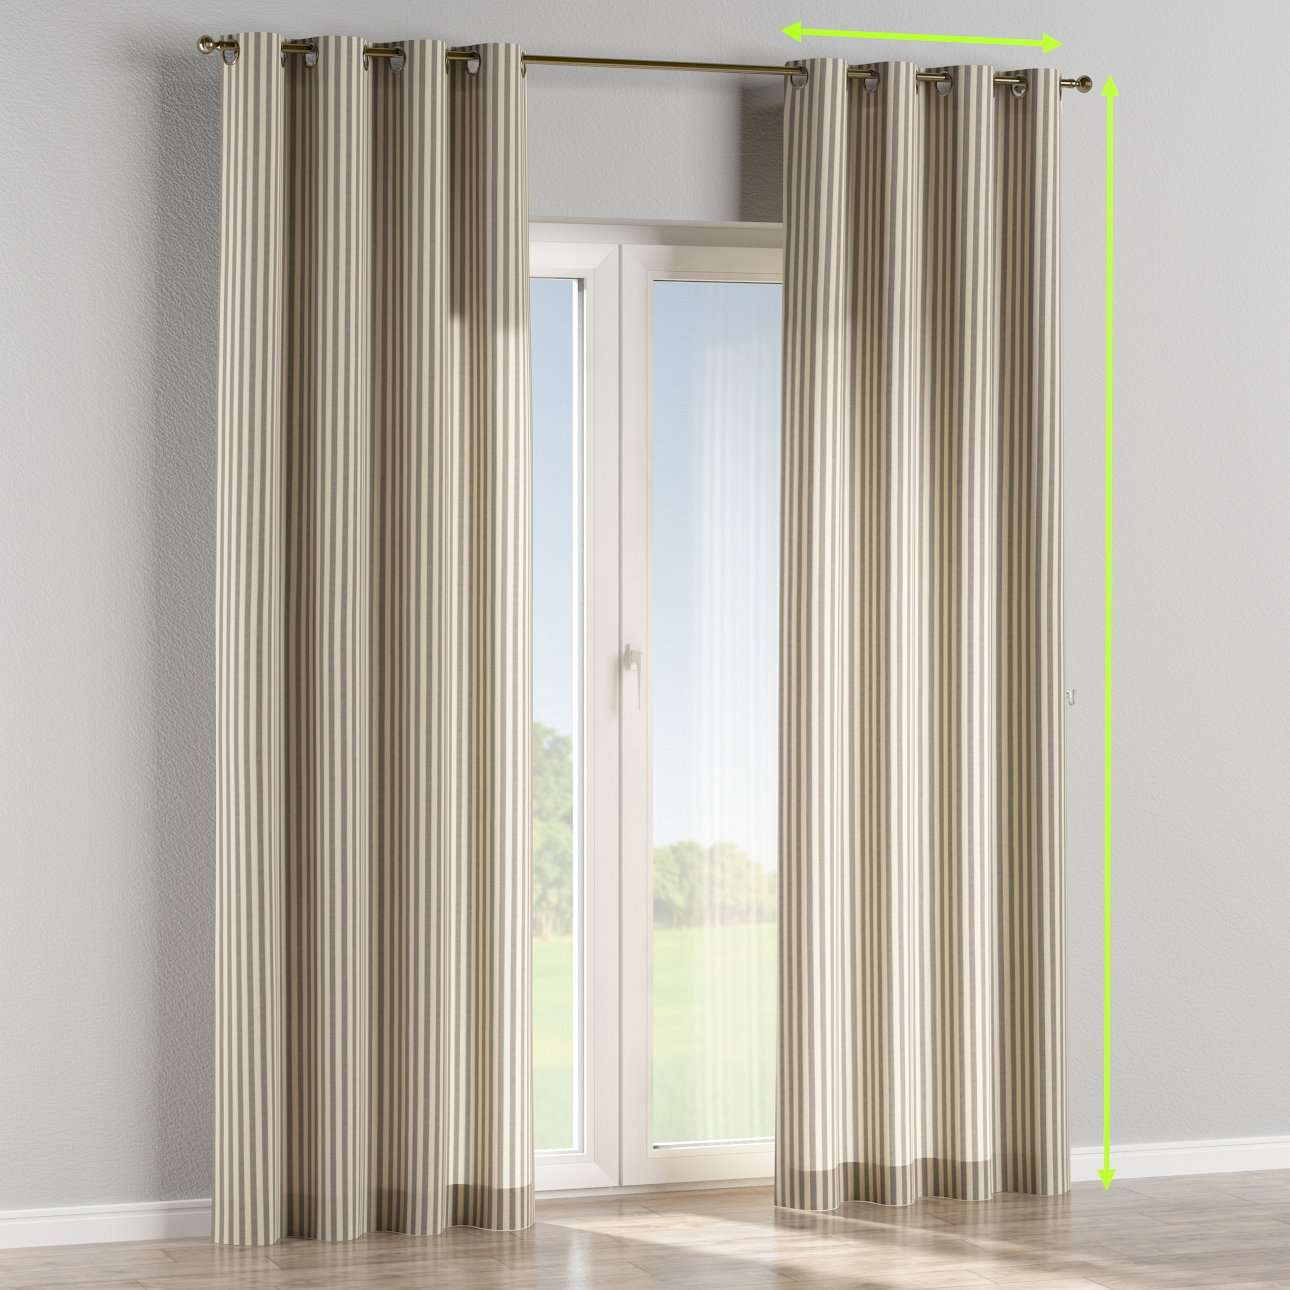 Eyelet lined curtains in collection Quadro, fabric: 136-12